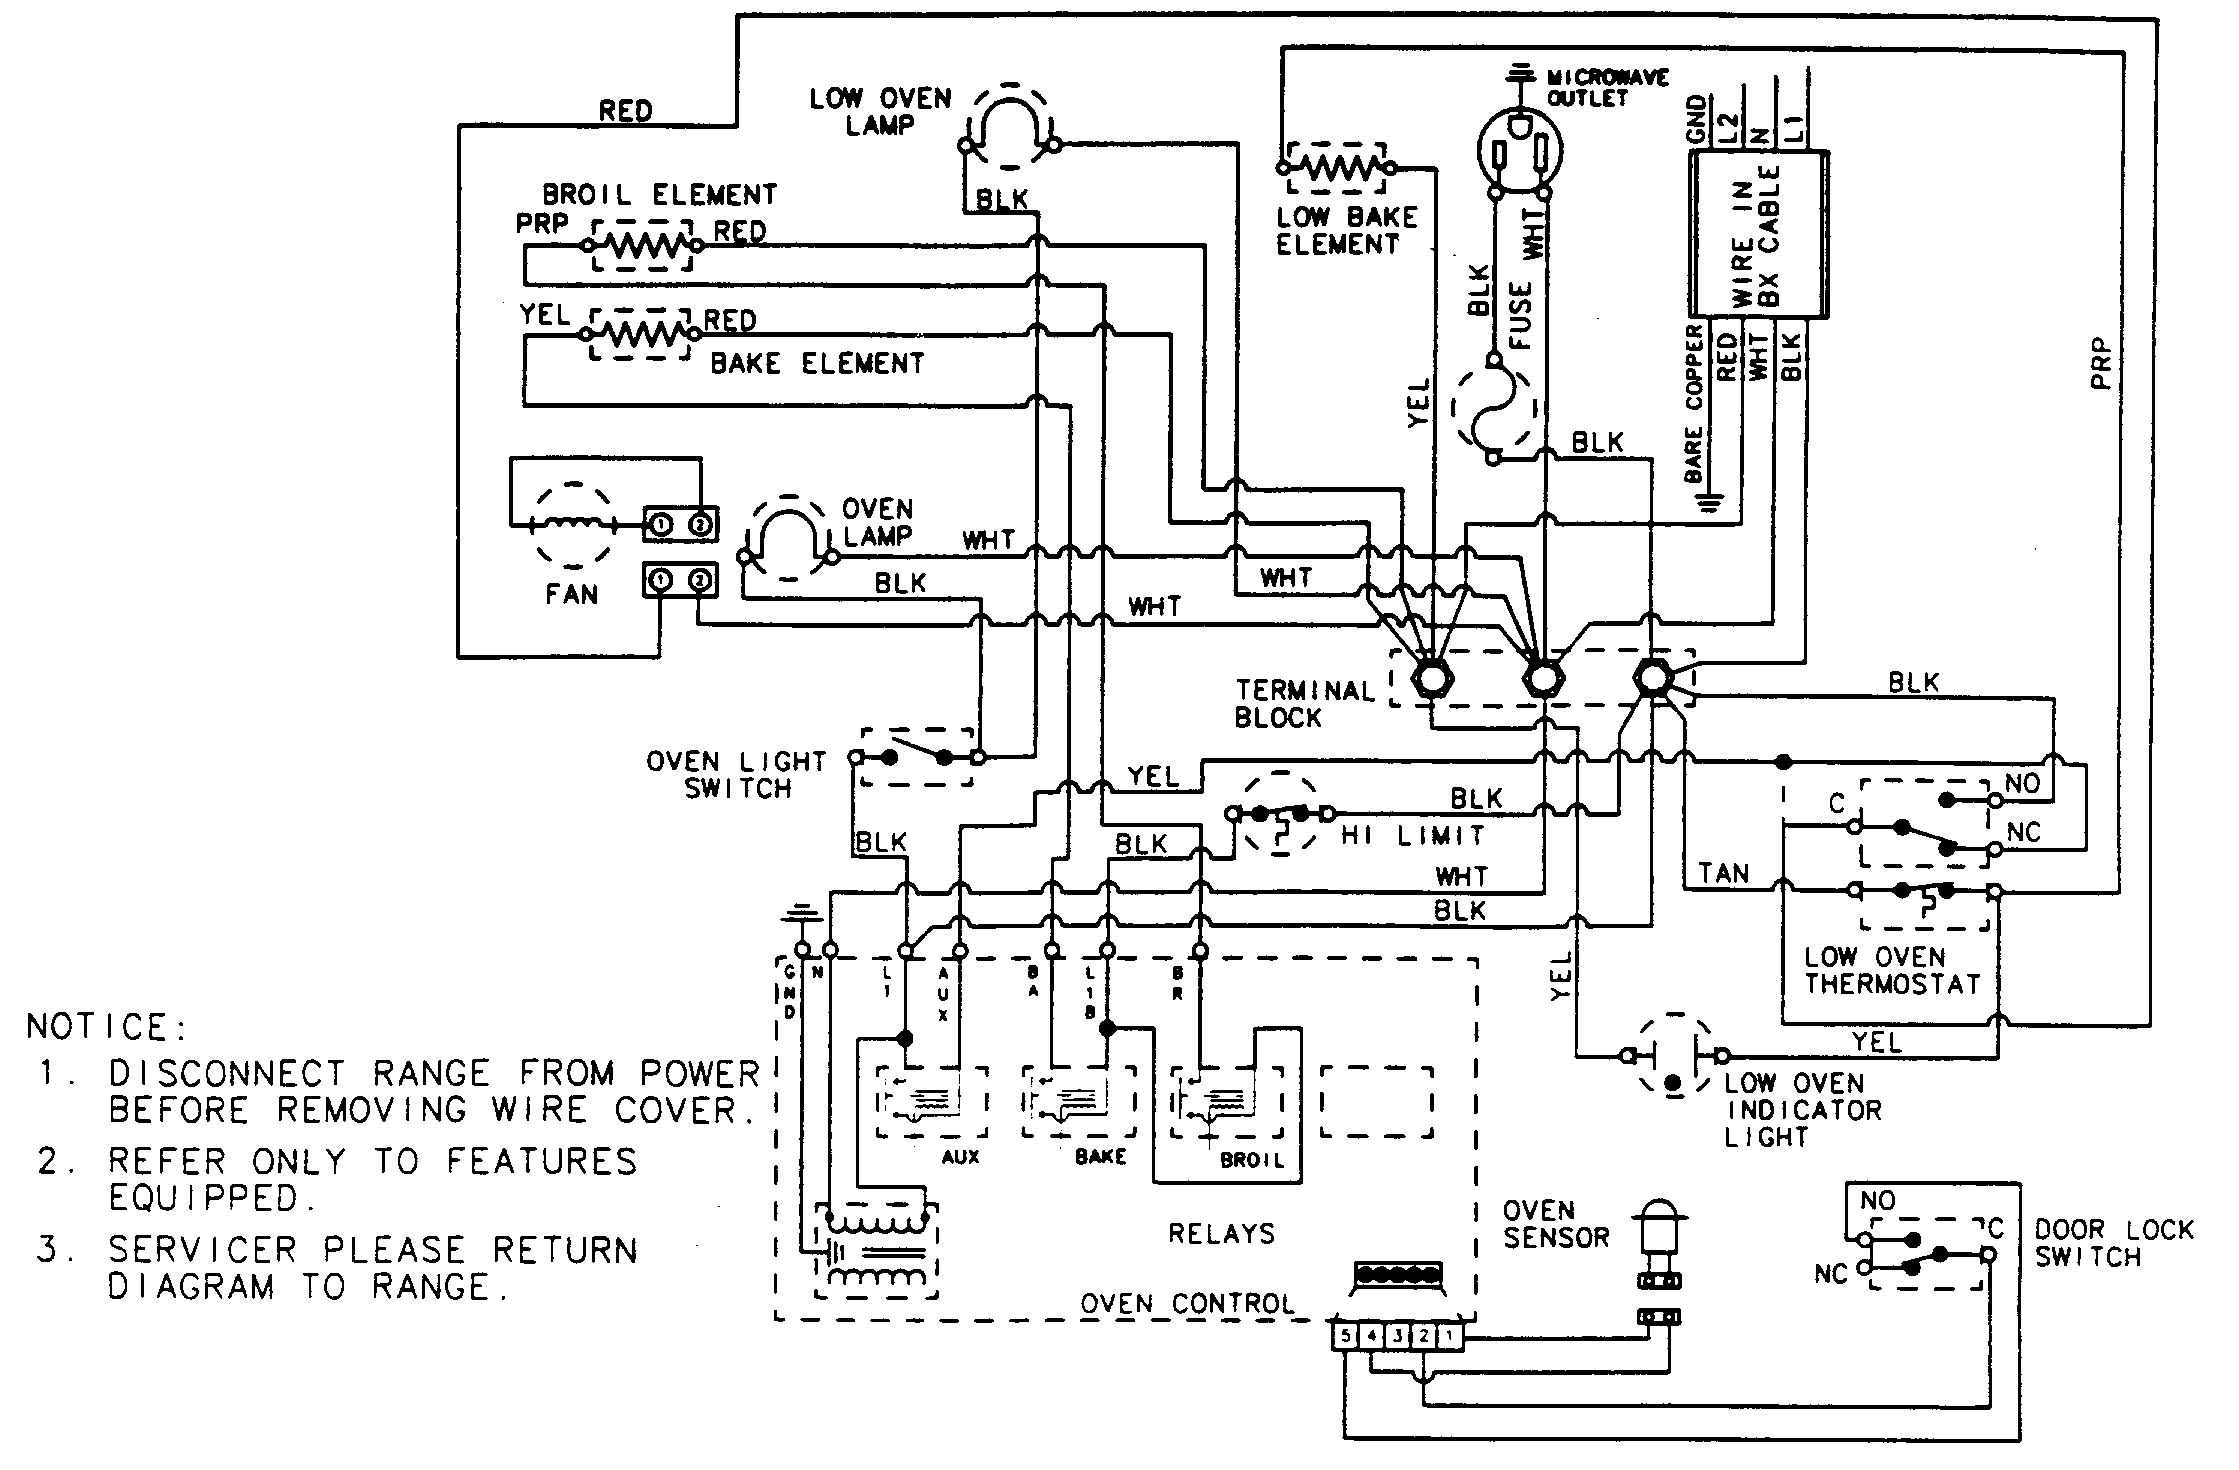 wiring information parts magic chef 9825vuv electric oven timer stove clocks and cooker connection unit wiring diagram at bayanpartner.co